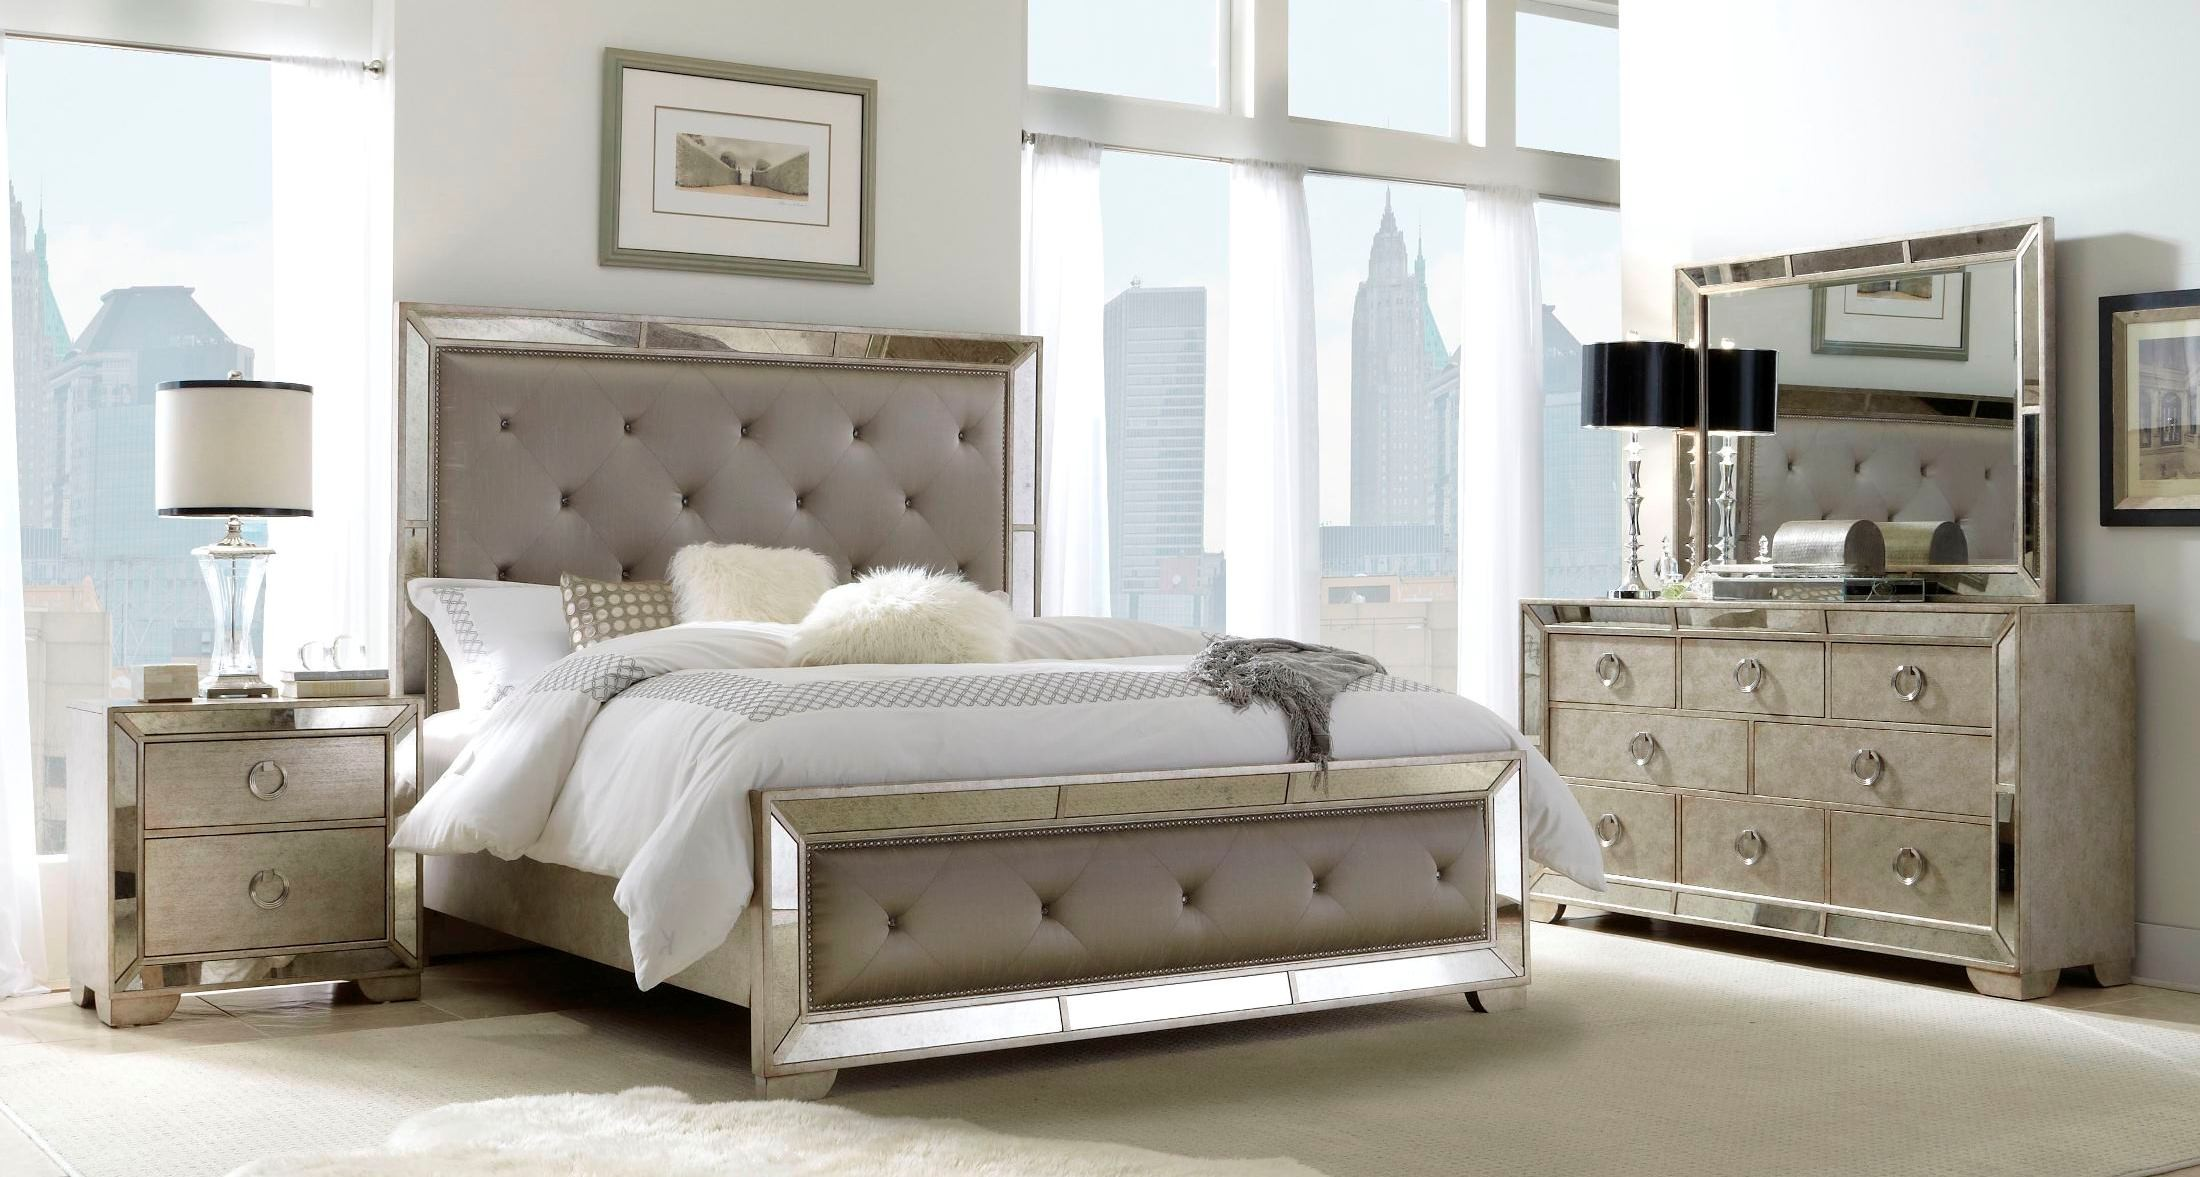 set deals for modern king contemporary house sets the regarding intended renovation furniture bedroom